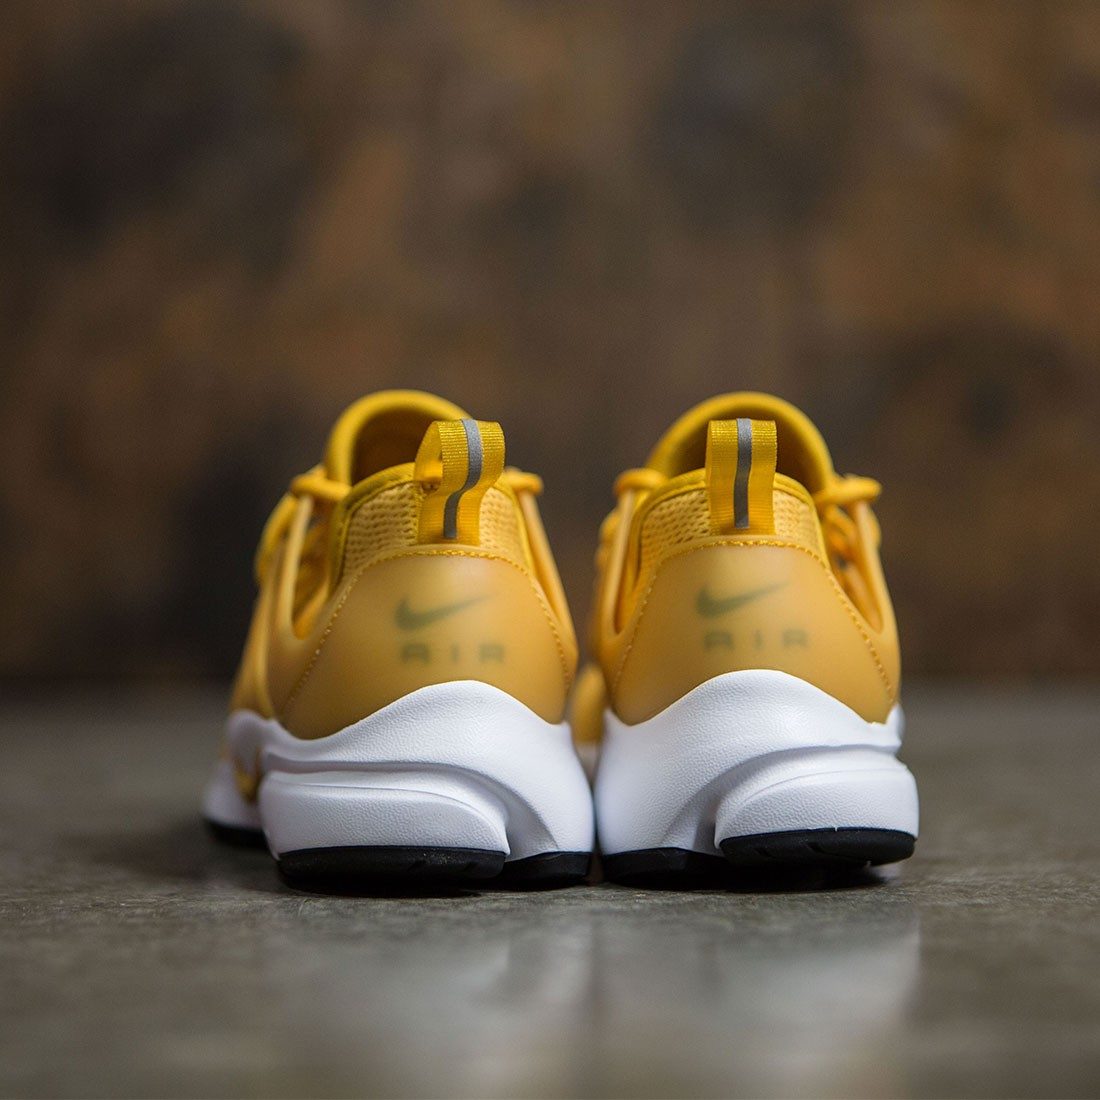 reputable site 5d9f8 81c39 coupon for nike air presto womens yellow gold 45081 b7ae2